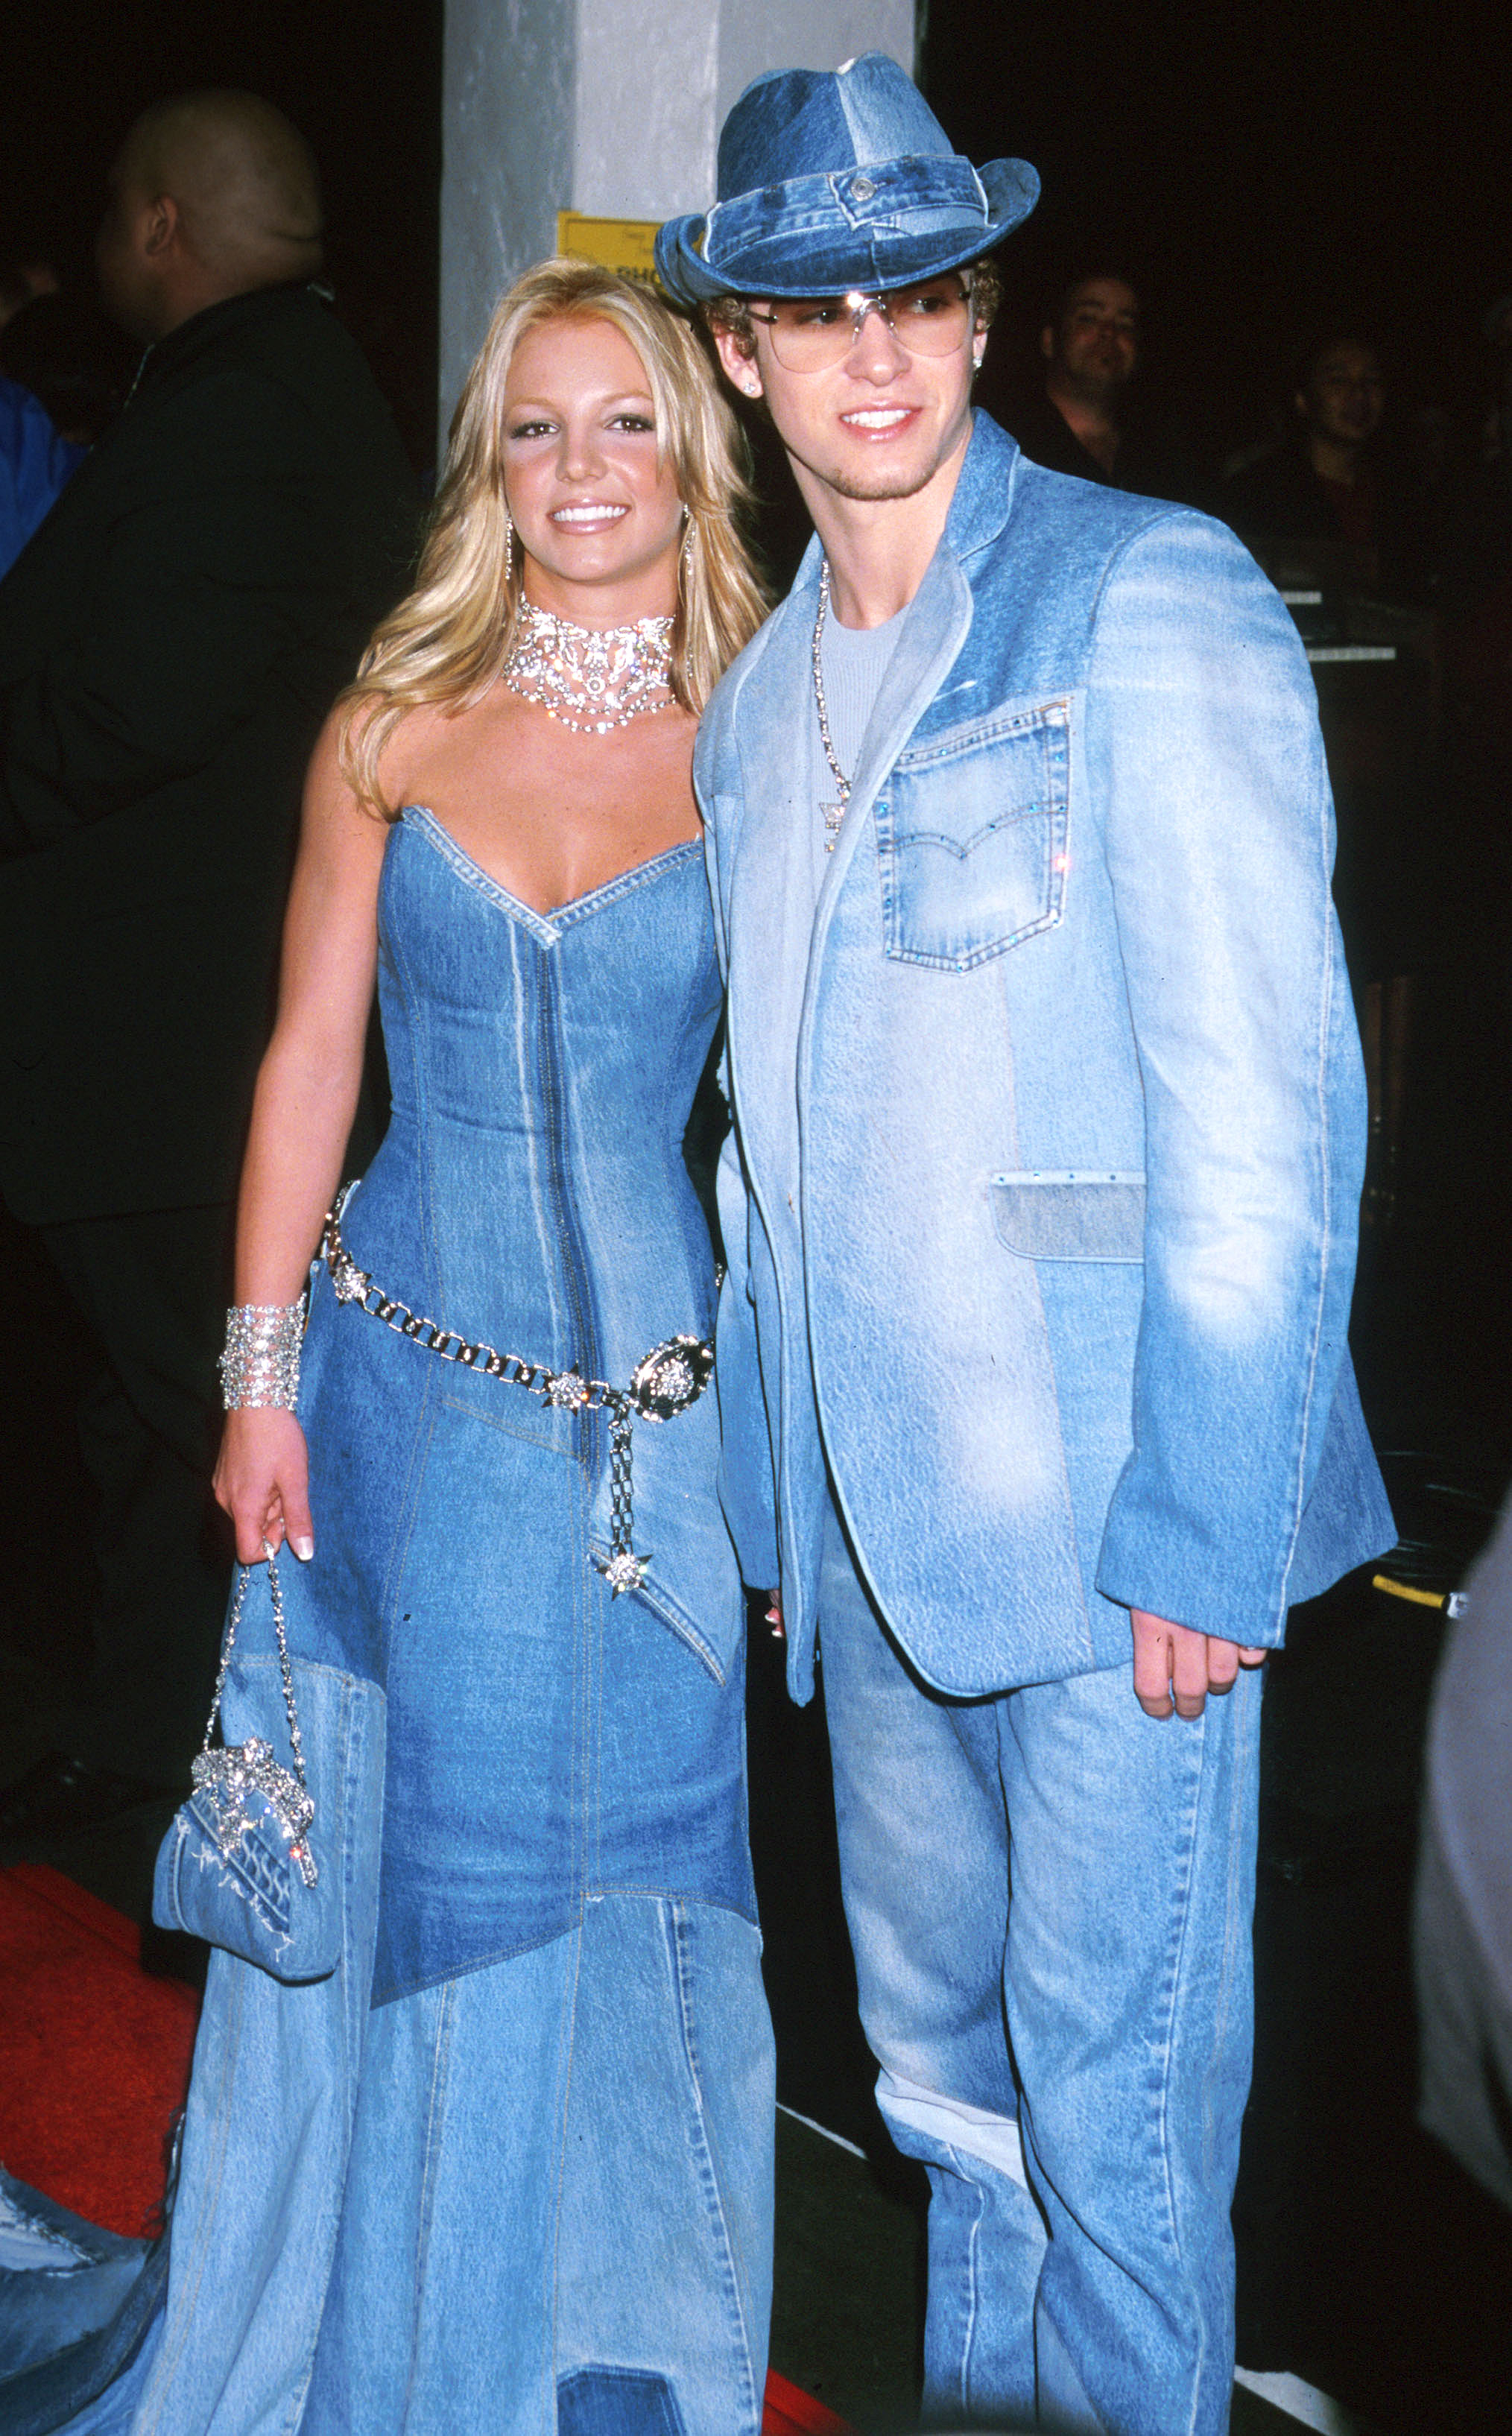 ustin Timerberlake and Britney Spears don denim outfits for the 2001 VMAs